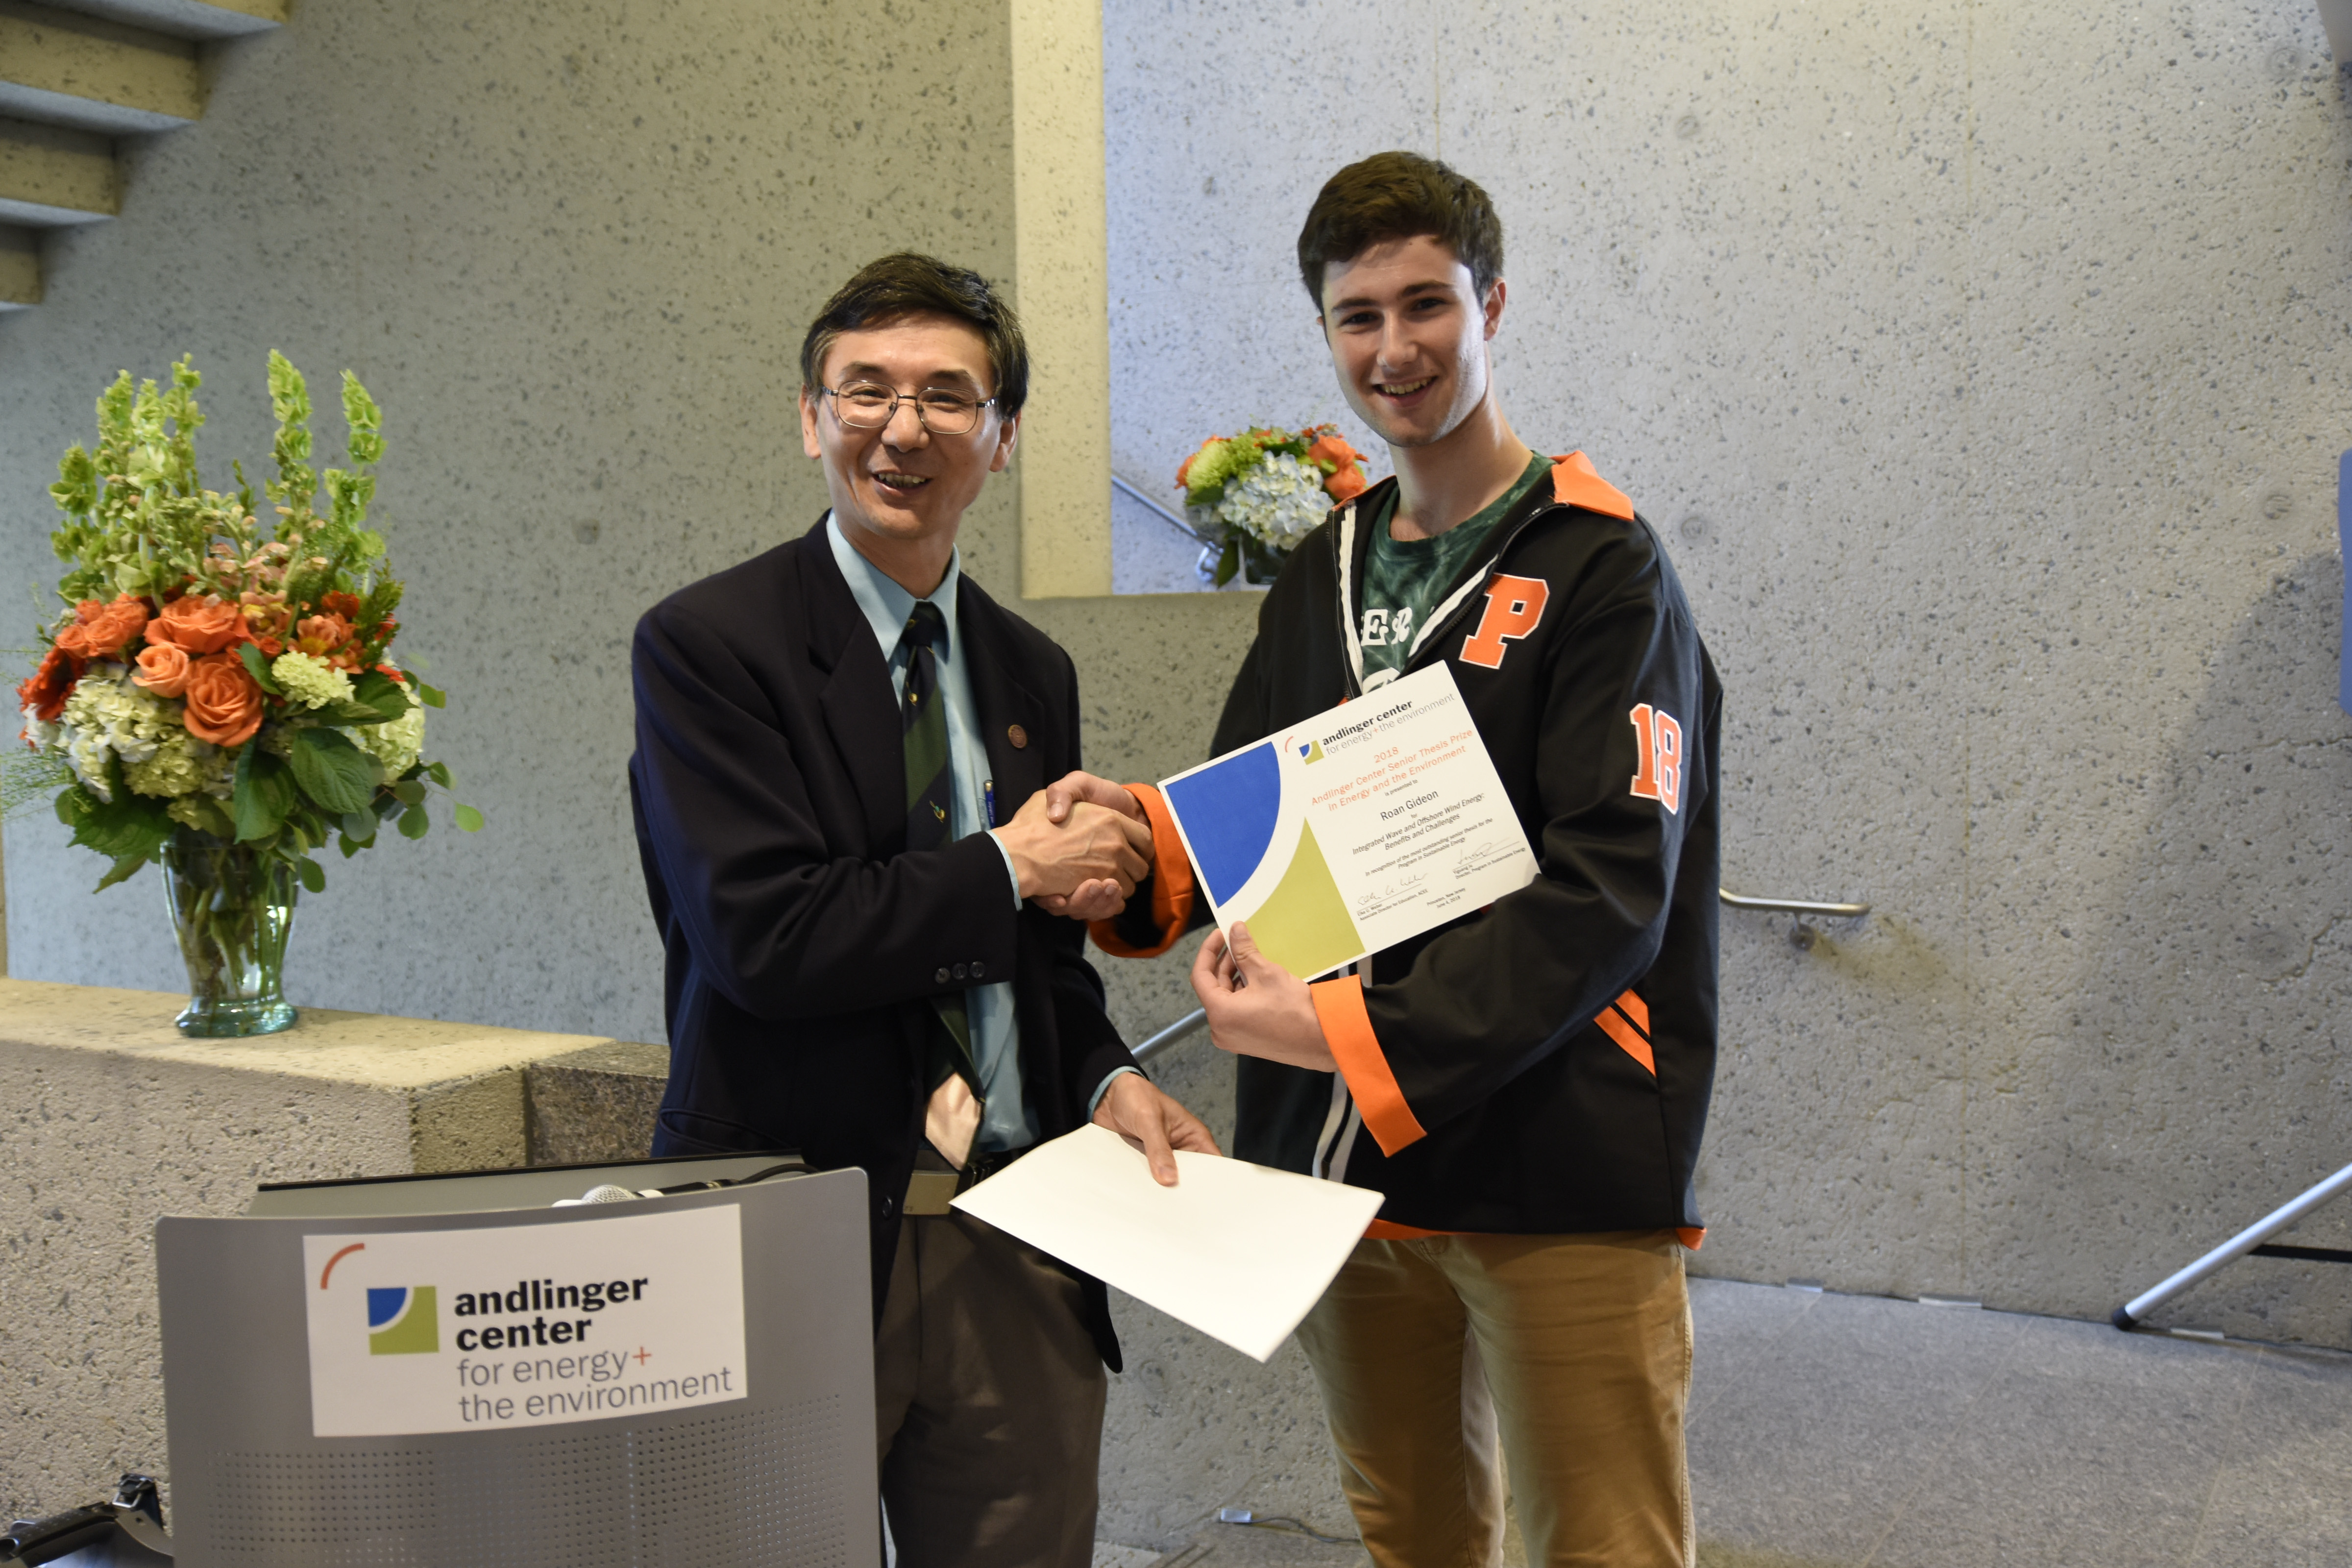 Roan Gideon '18 was awarded the inaugural Andlinger Center Senior Thesis Prize in Energy and the Environment by Prof. Yiguang Ju on June 4 at the Andlinger Center Class Day Reception for outstanding research in his senior thesis.